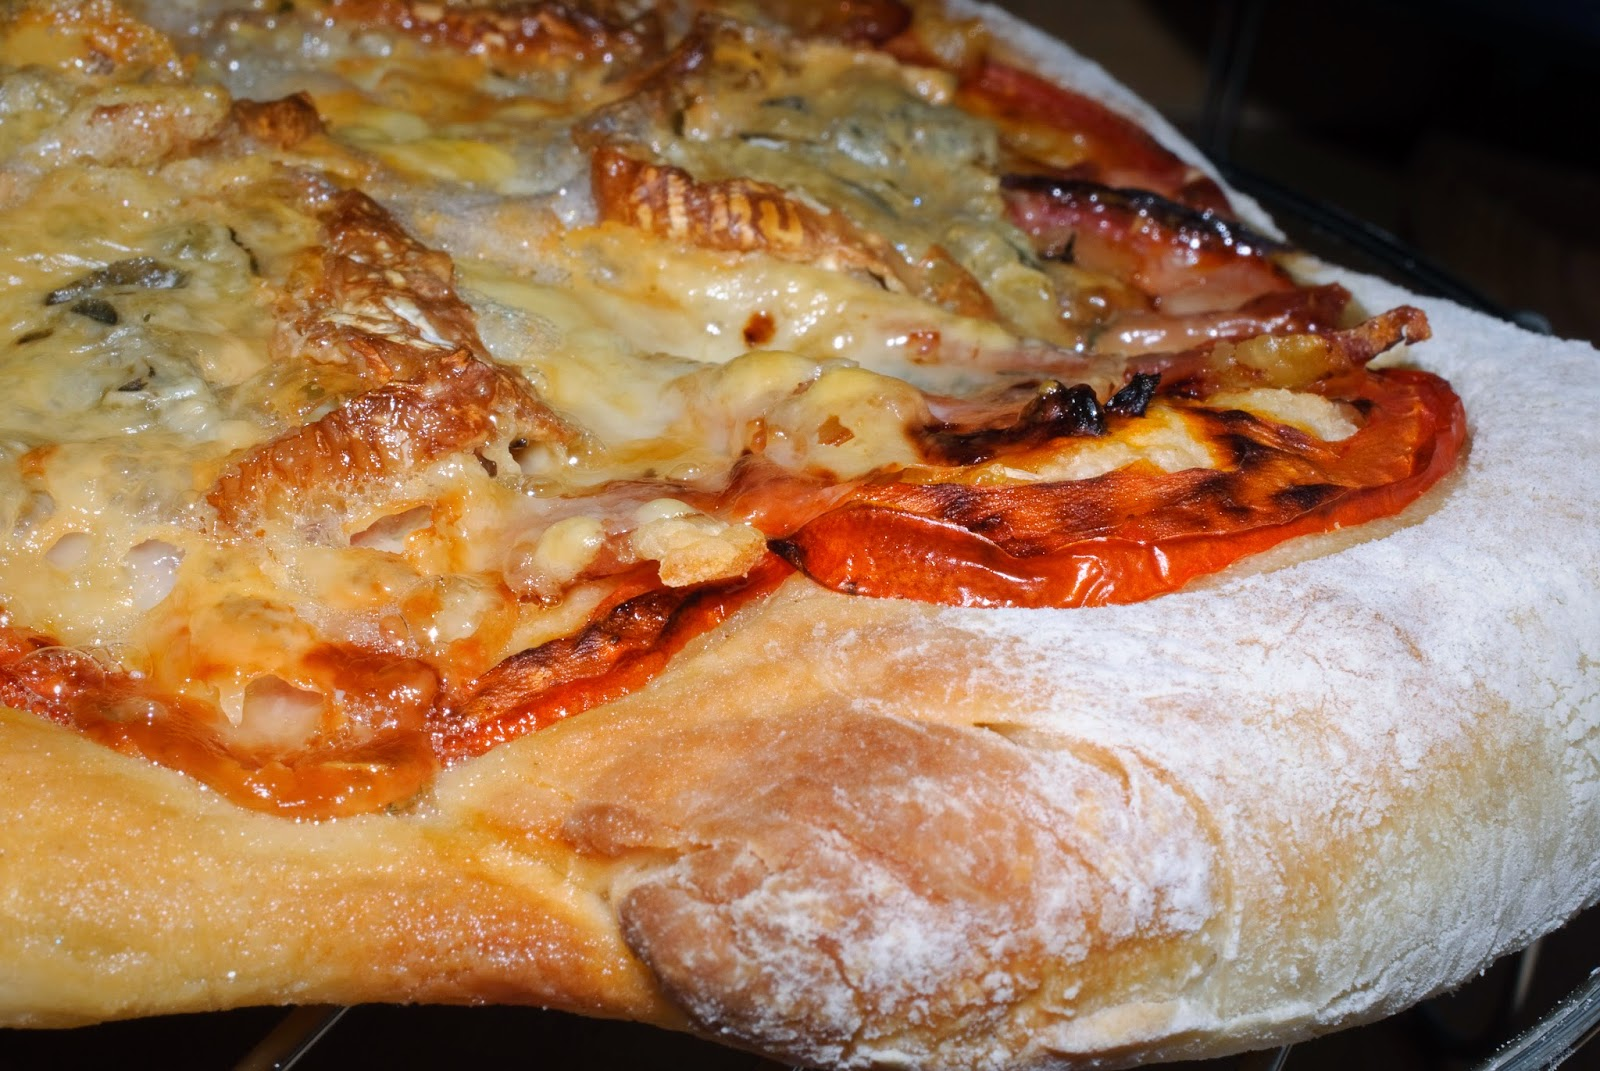 Pizza de lomo y queso; loin and cheese pizza